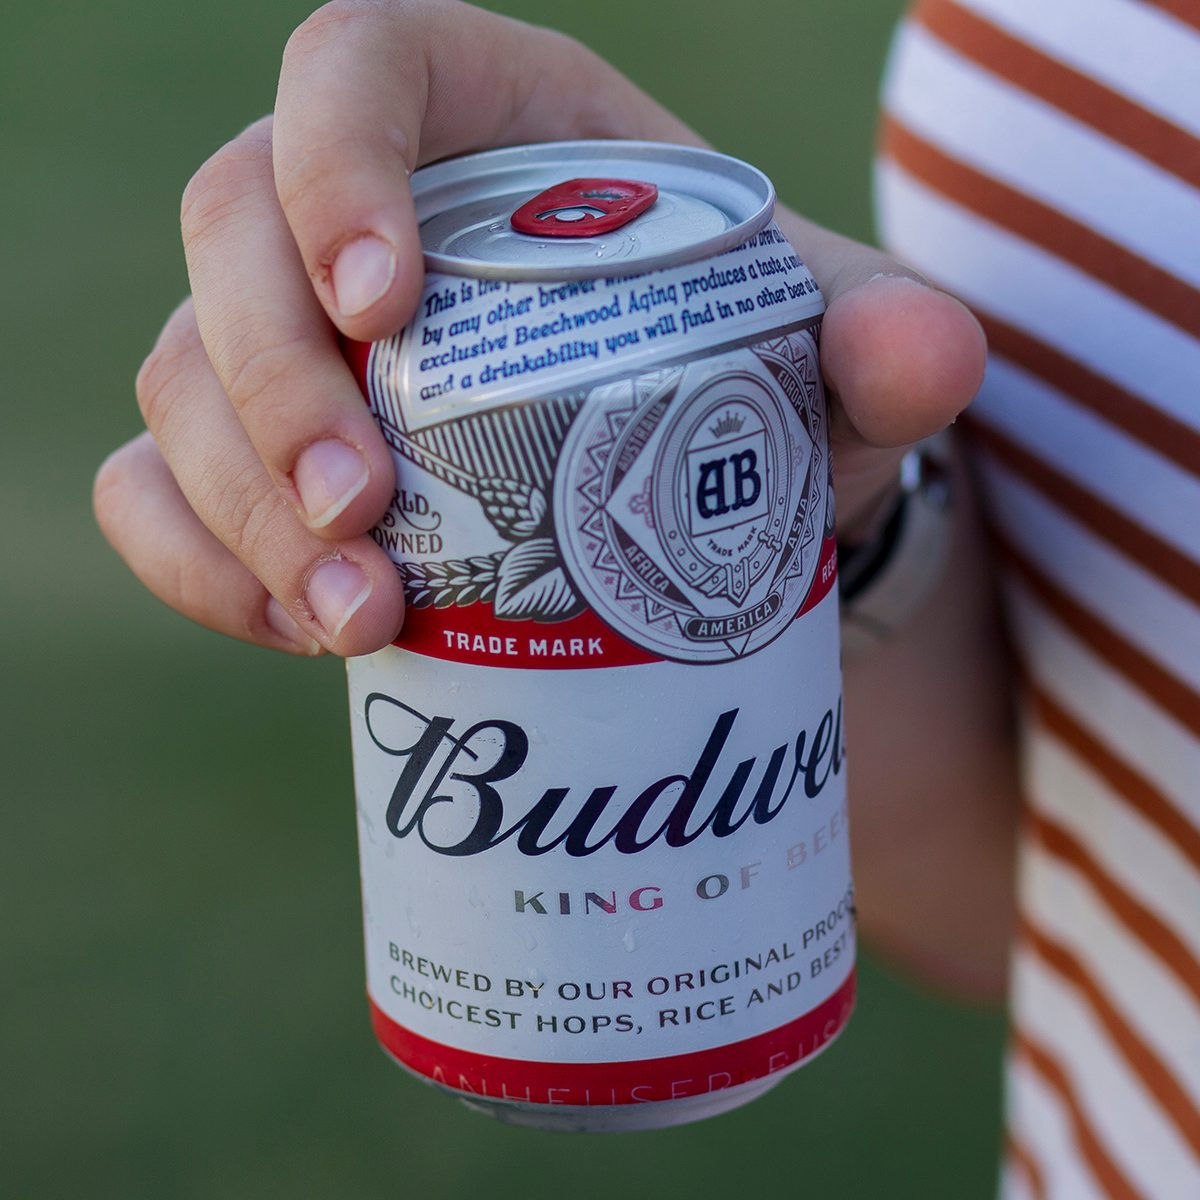 Can of Budweiser beer